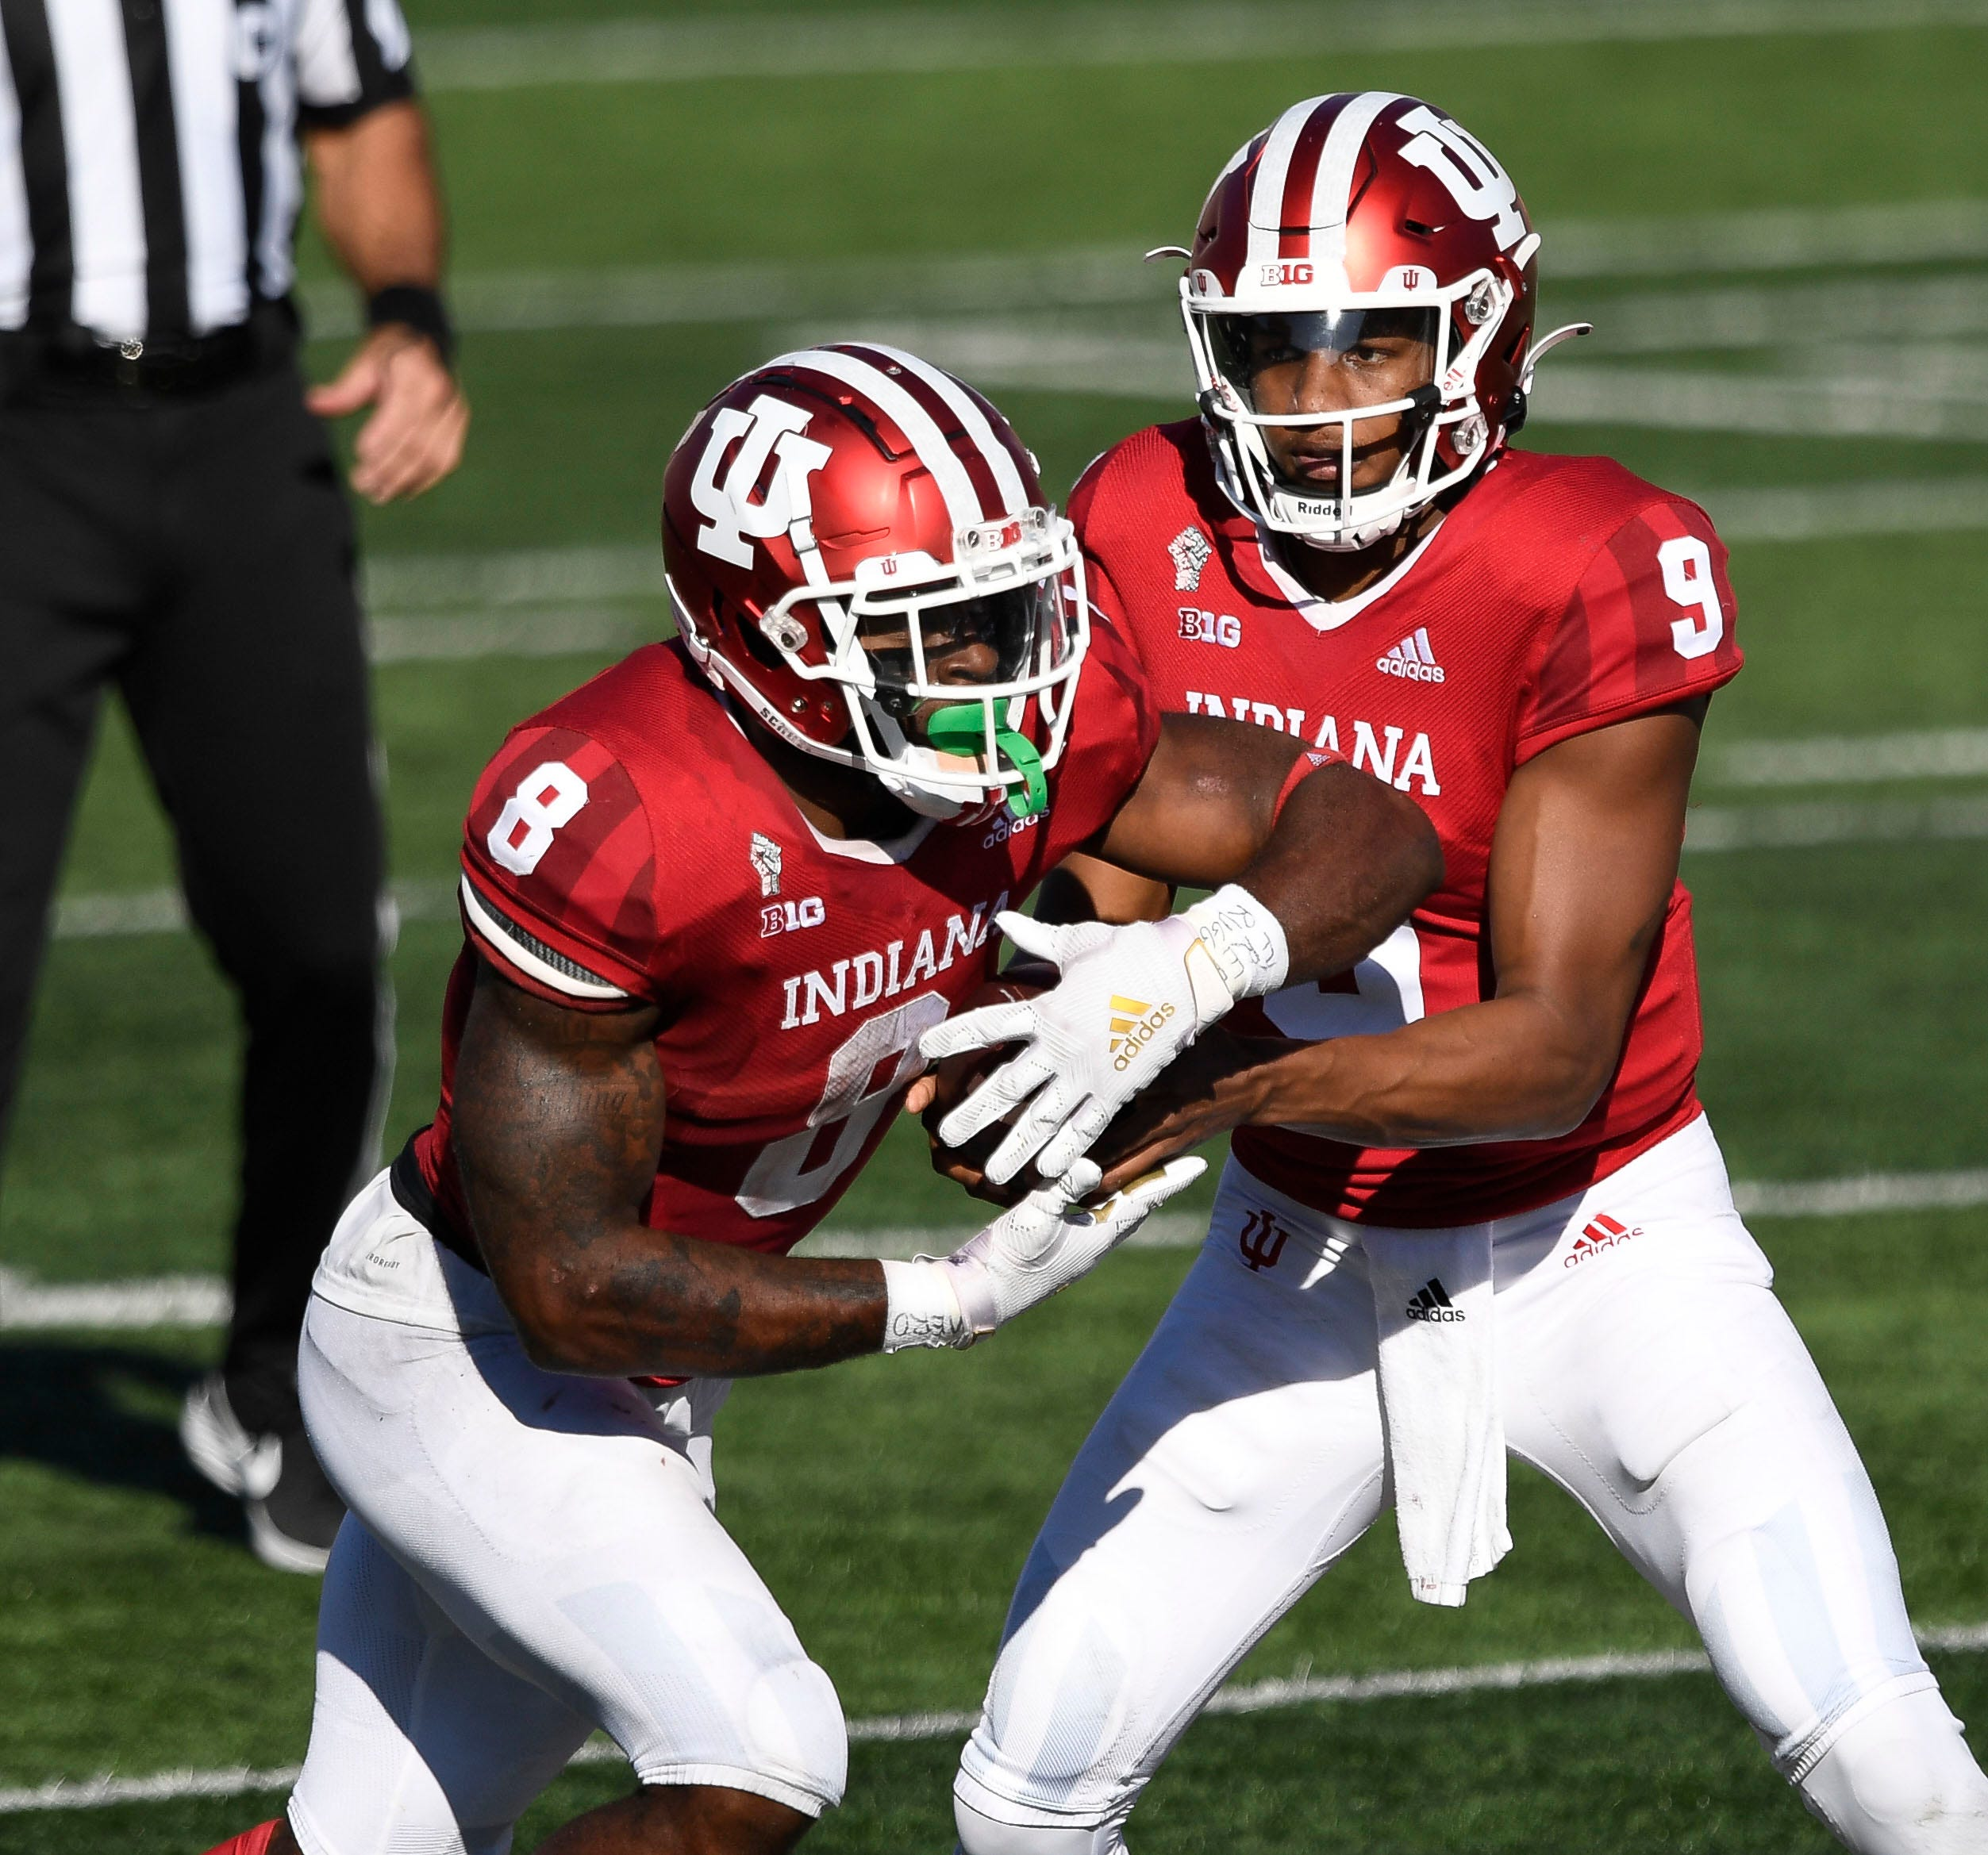 College football winners and losers from Week 10 include Indiana, Liberty, Arizona State